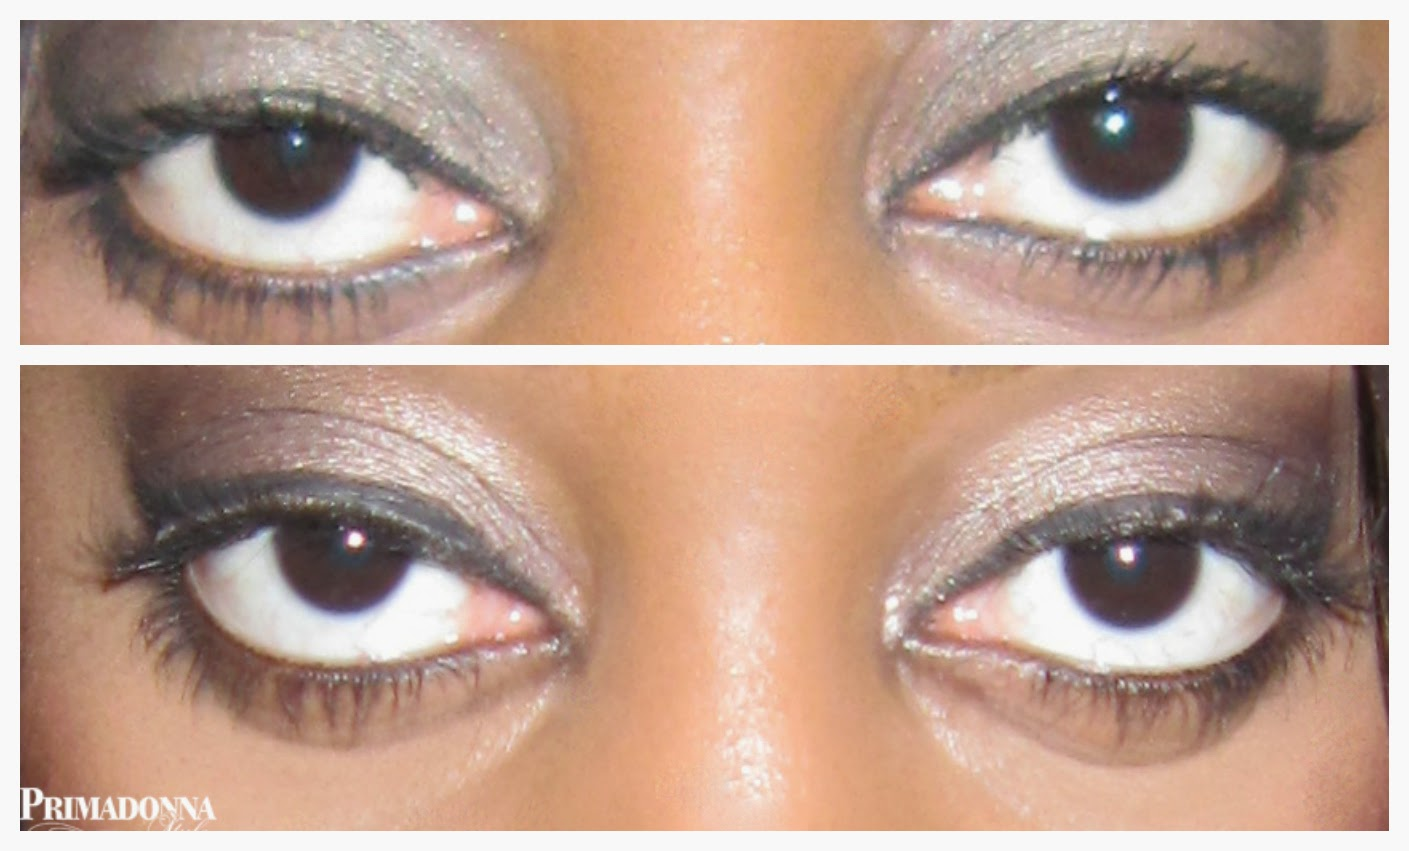 Primadonna Style: Primadonna's Lush Lashes Budget Beauty Secret!